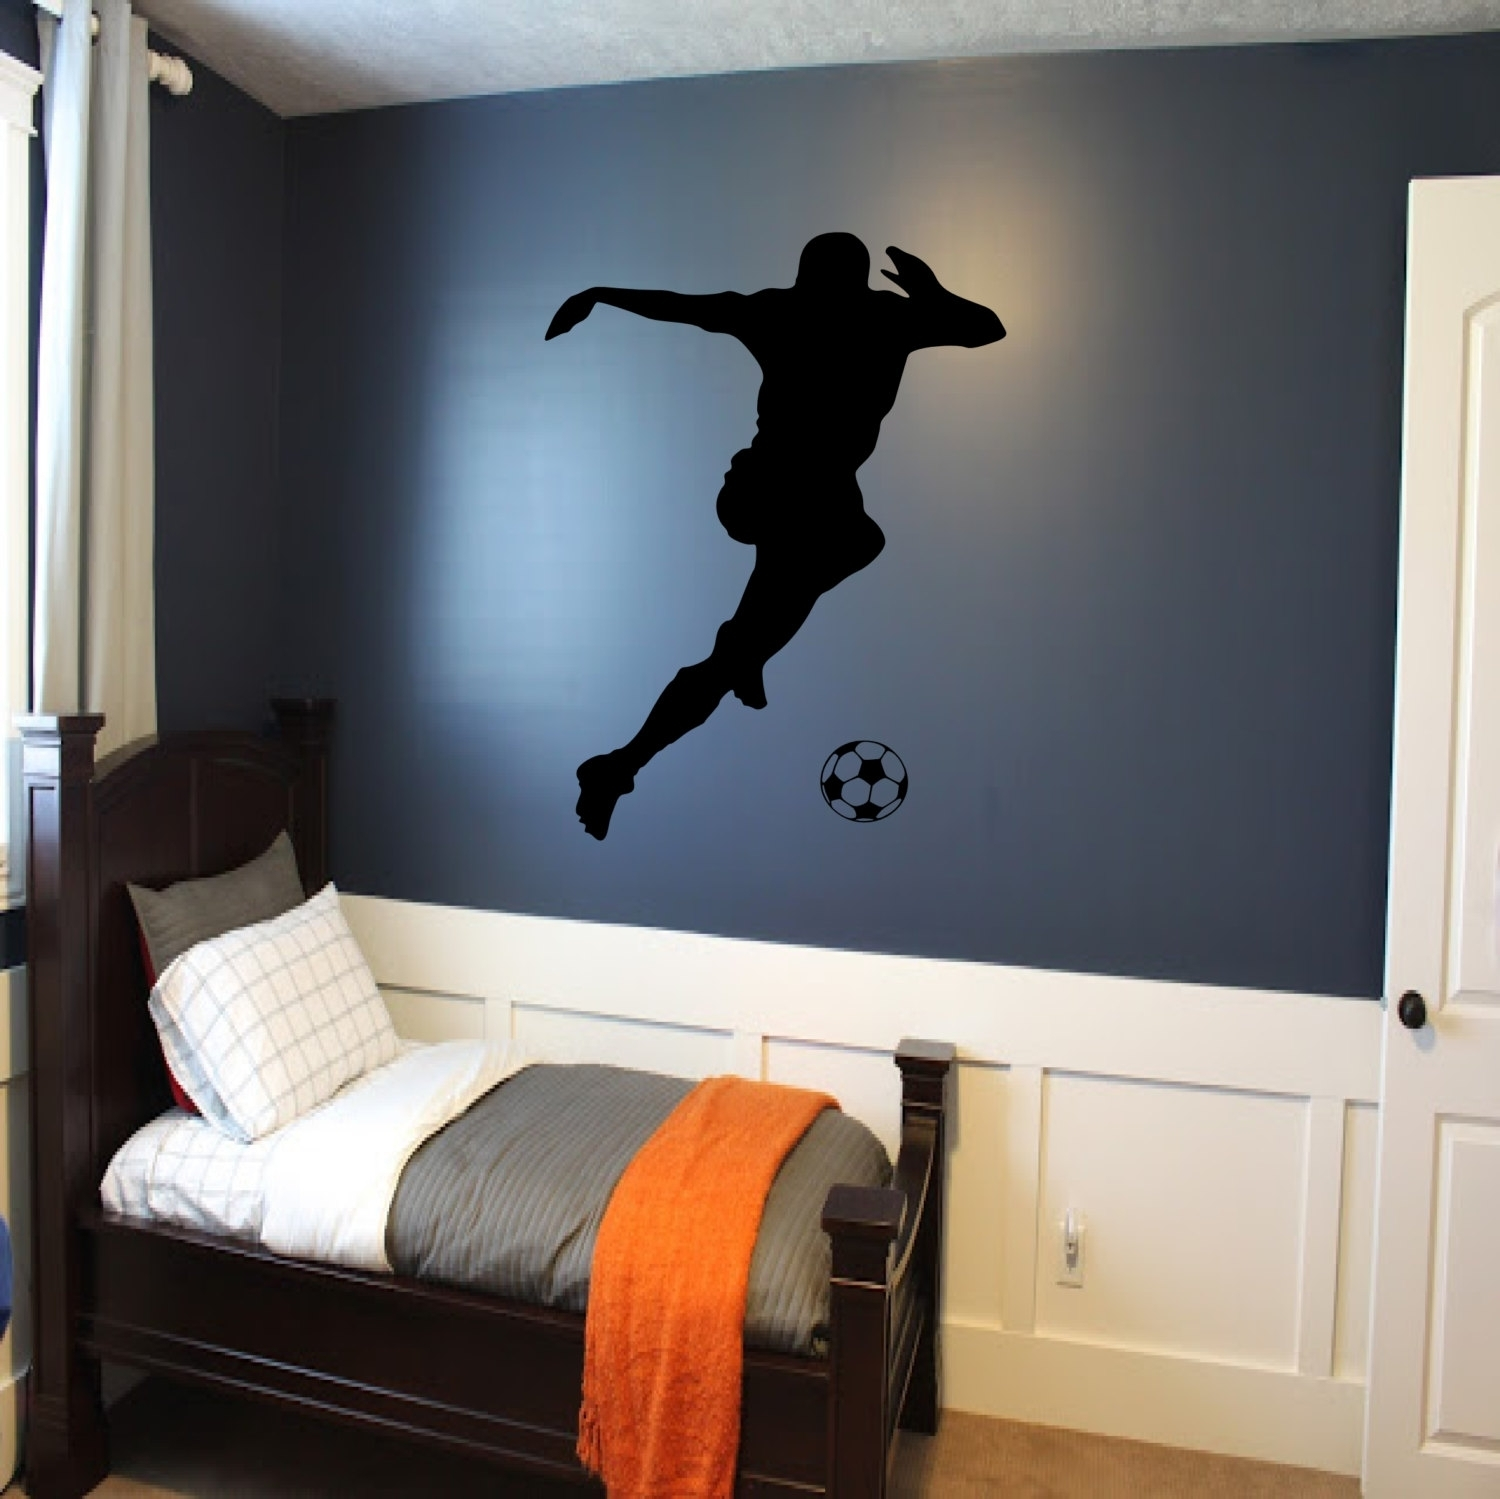 Inspirational Soccer Wall Art Paintings | Wall Decorations With Regard To Newest Soccer Wall Art (View 9 of 20)